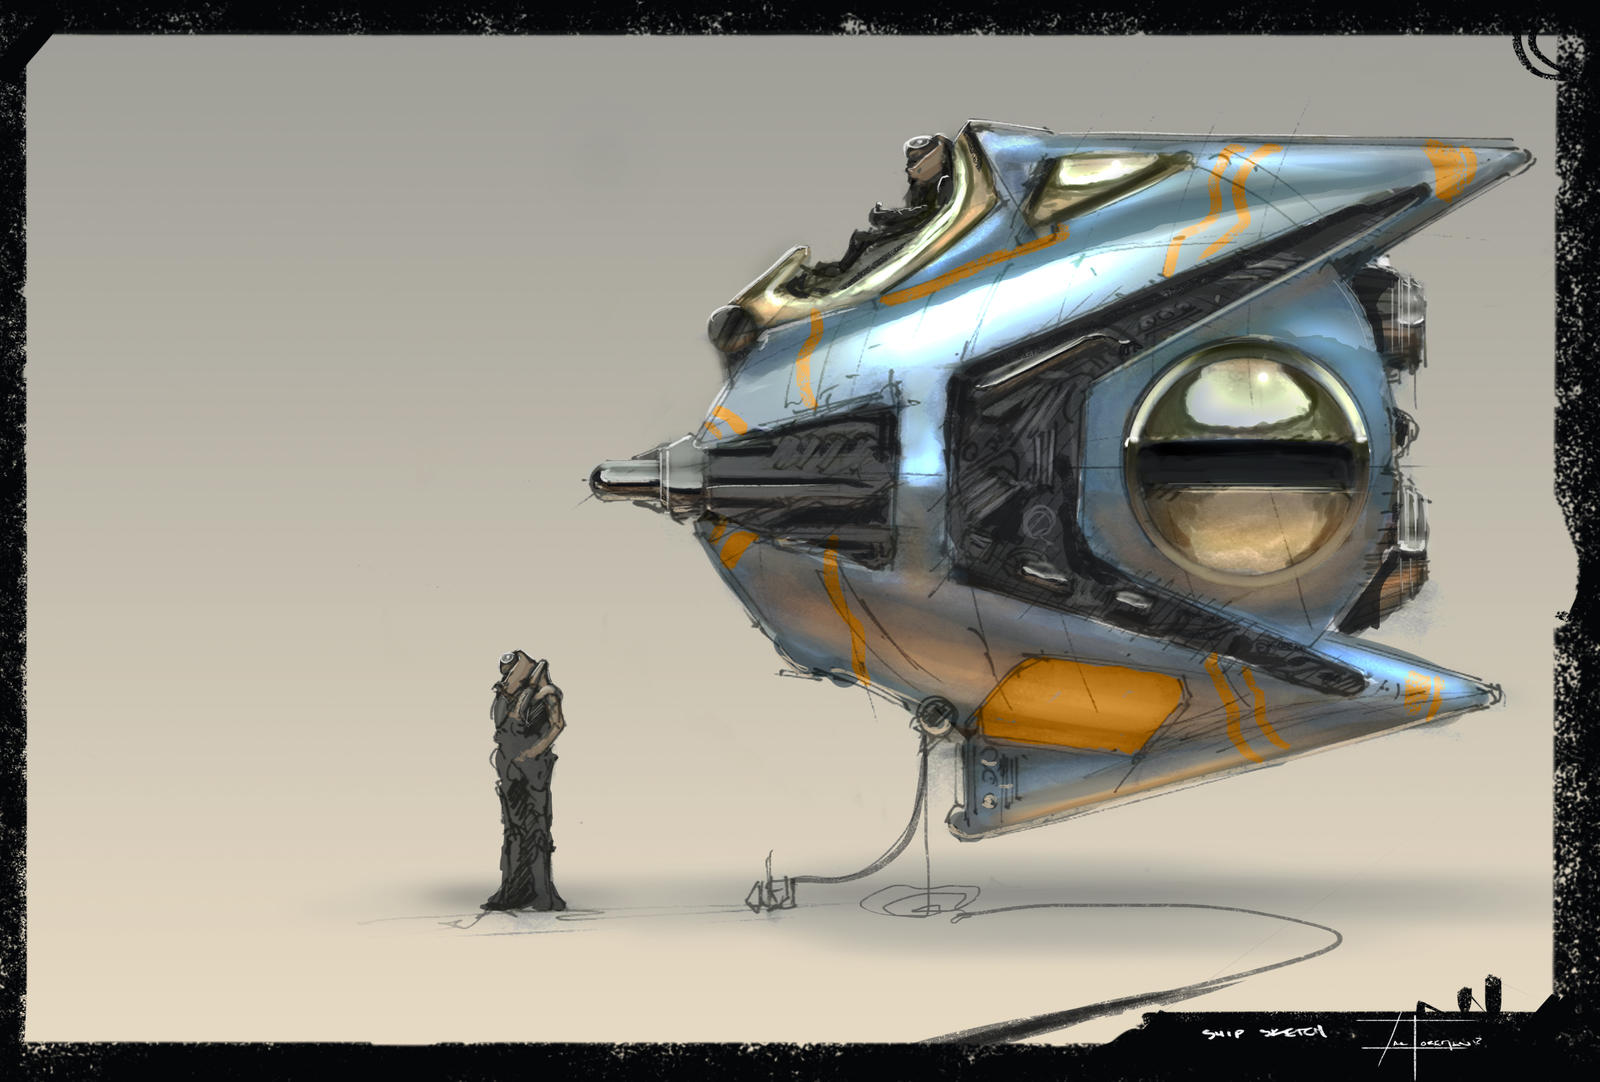 11-15-12 (ship sketch) by zakforeman